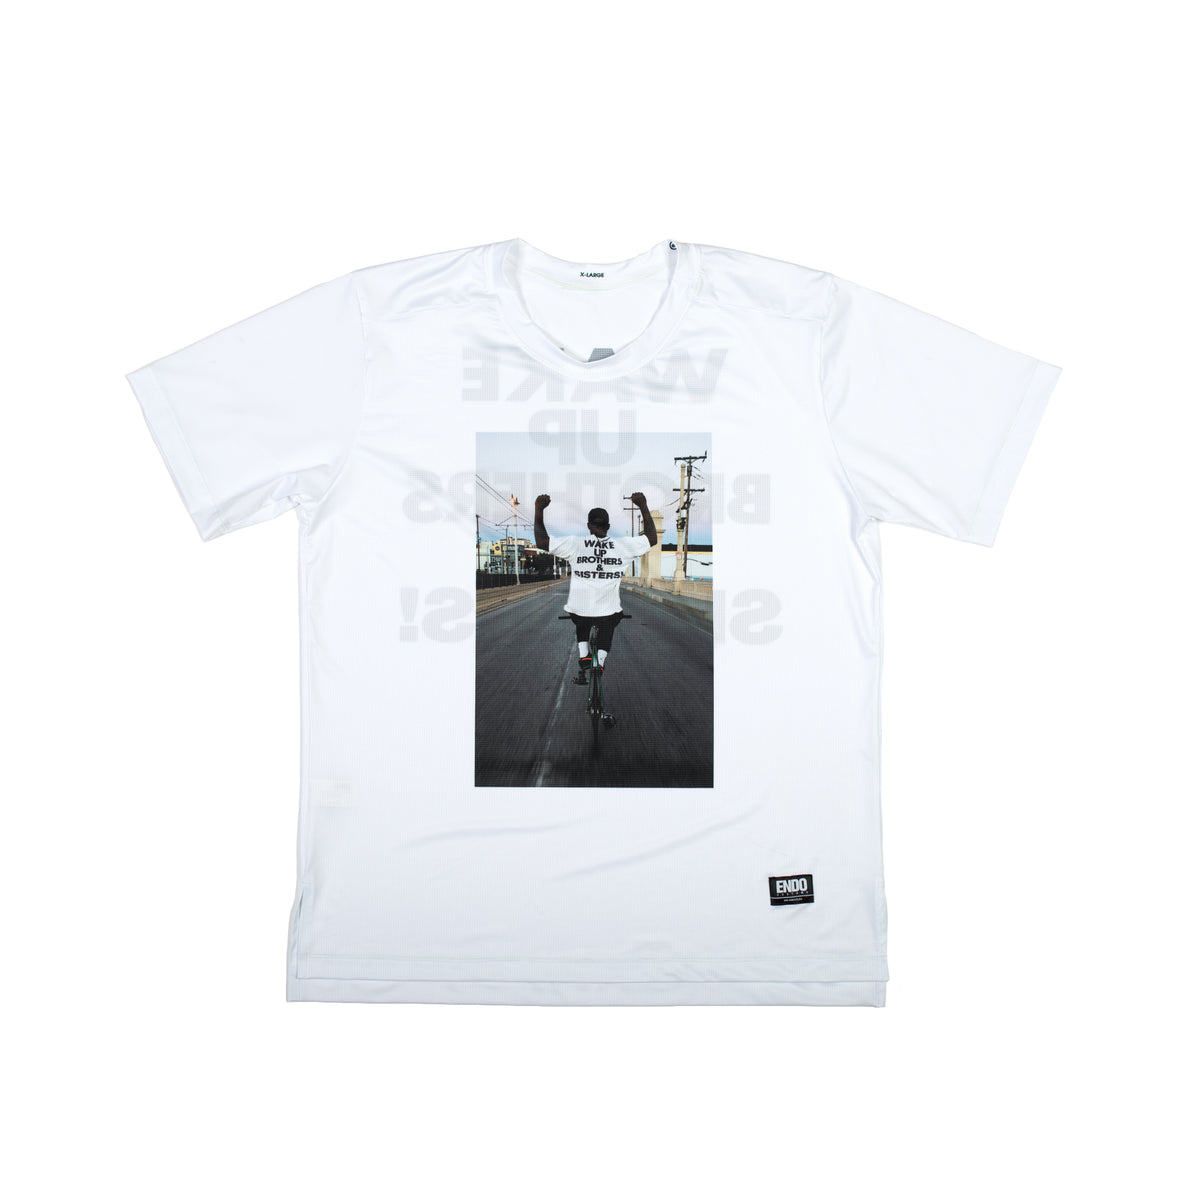 WAKE UP! - LIMITED PRINT + VIRGIL SHORT SLEEVE TECH TEE